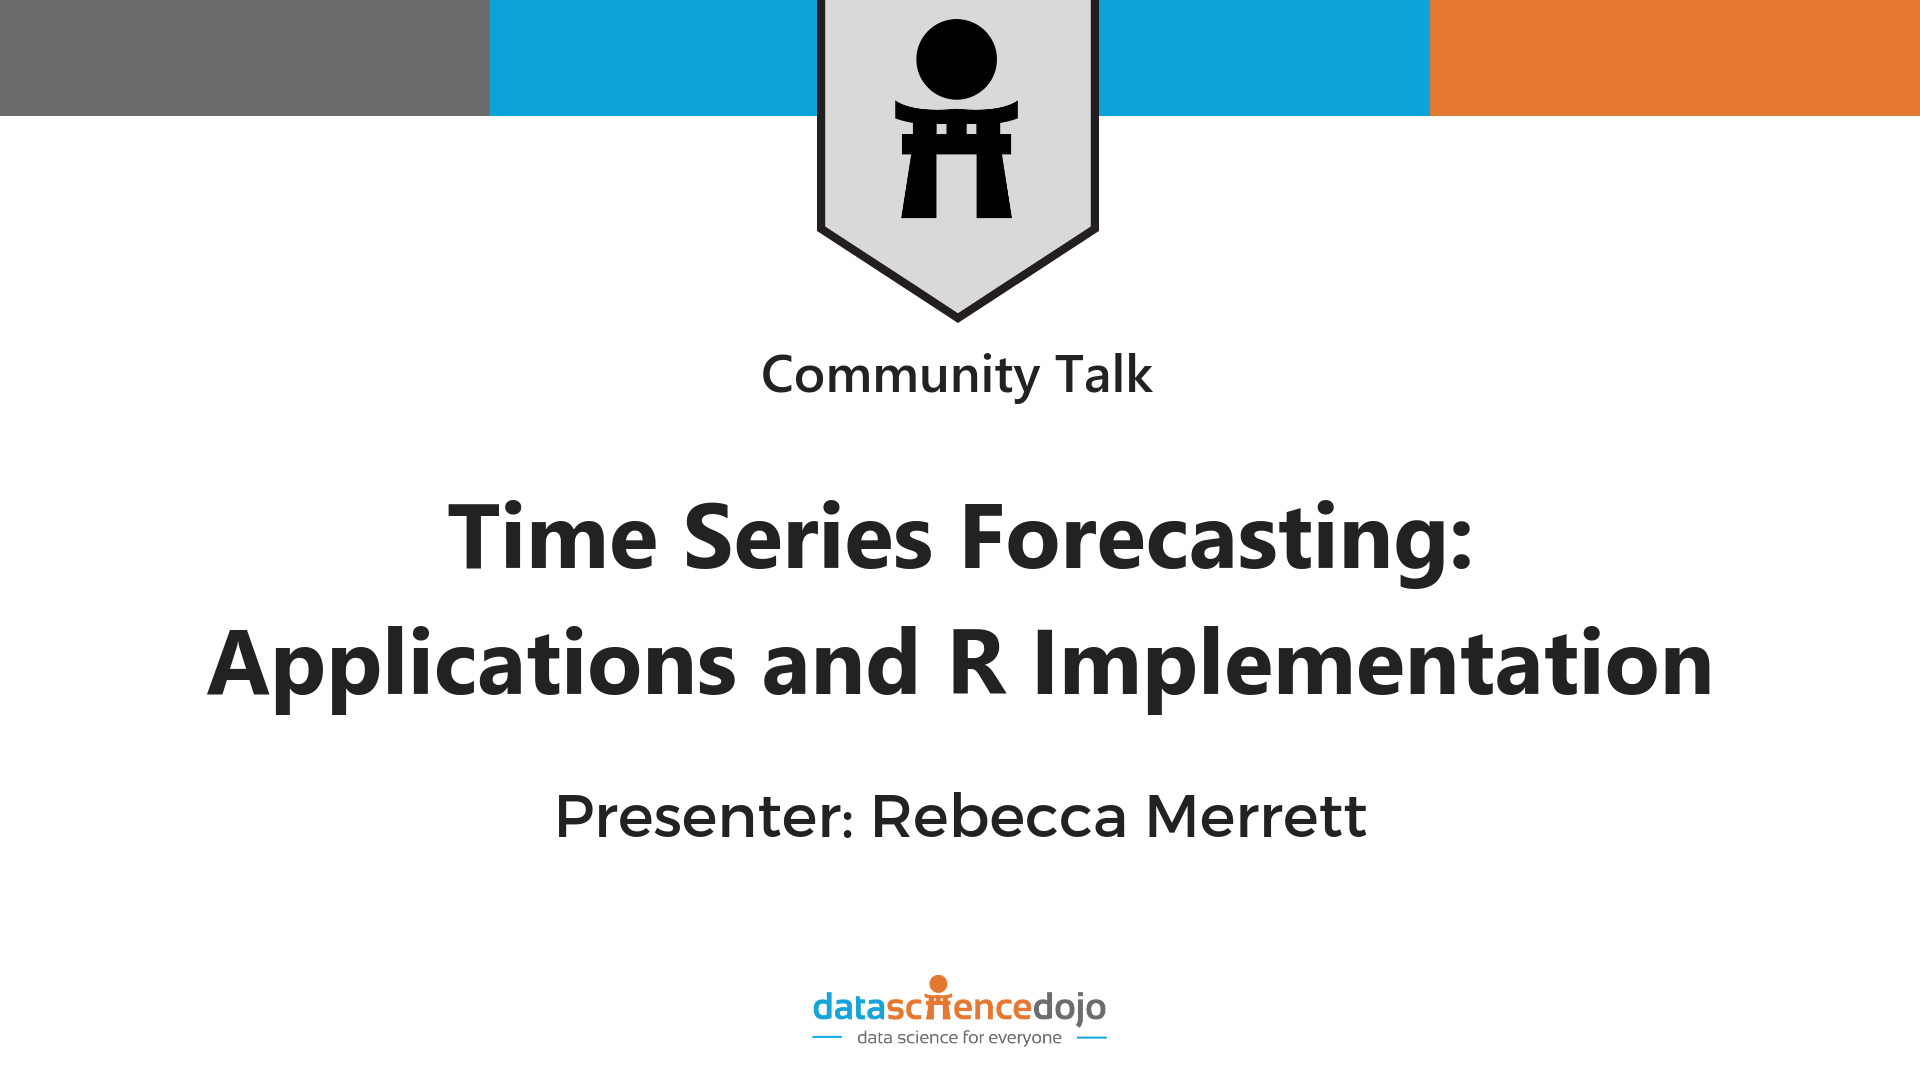 Time series forecasting applications and r implementation » Data Science Dojo